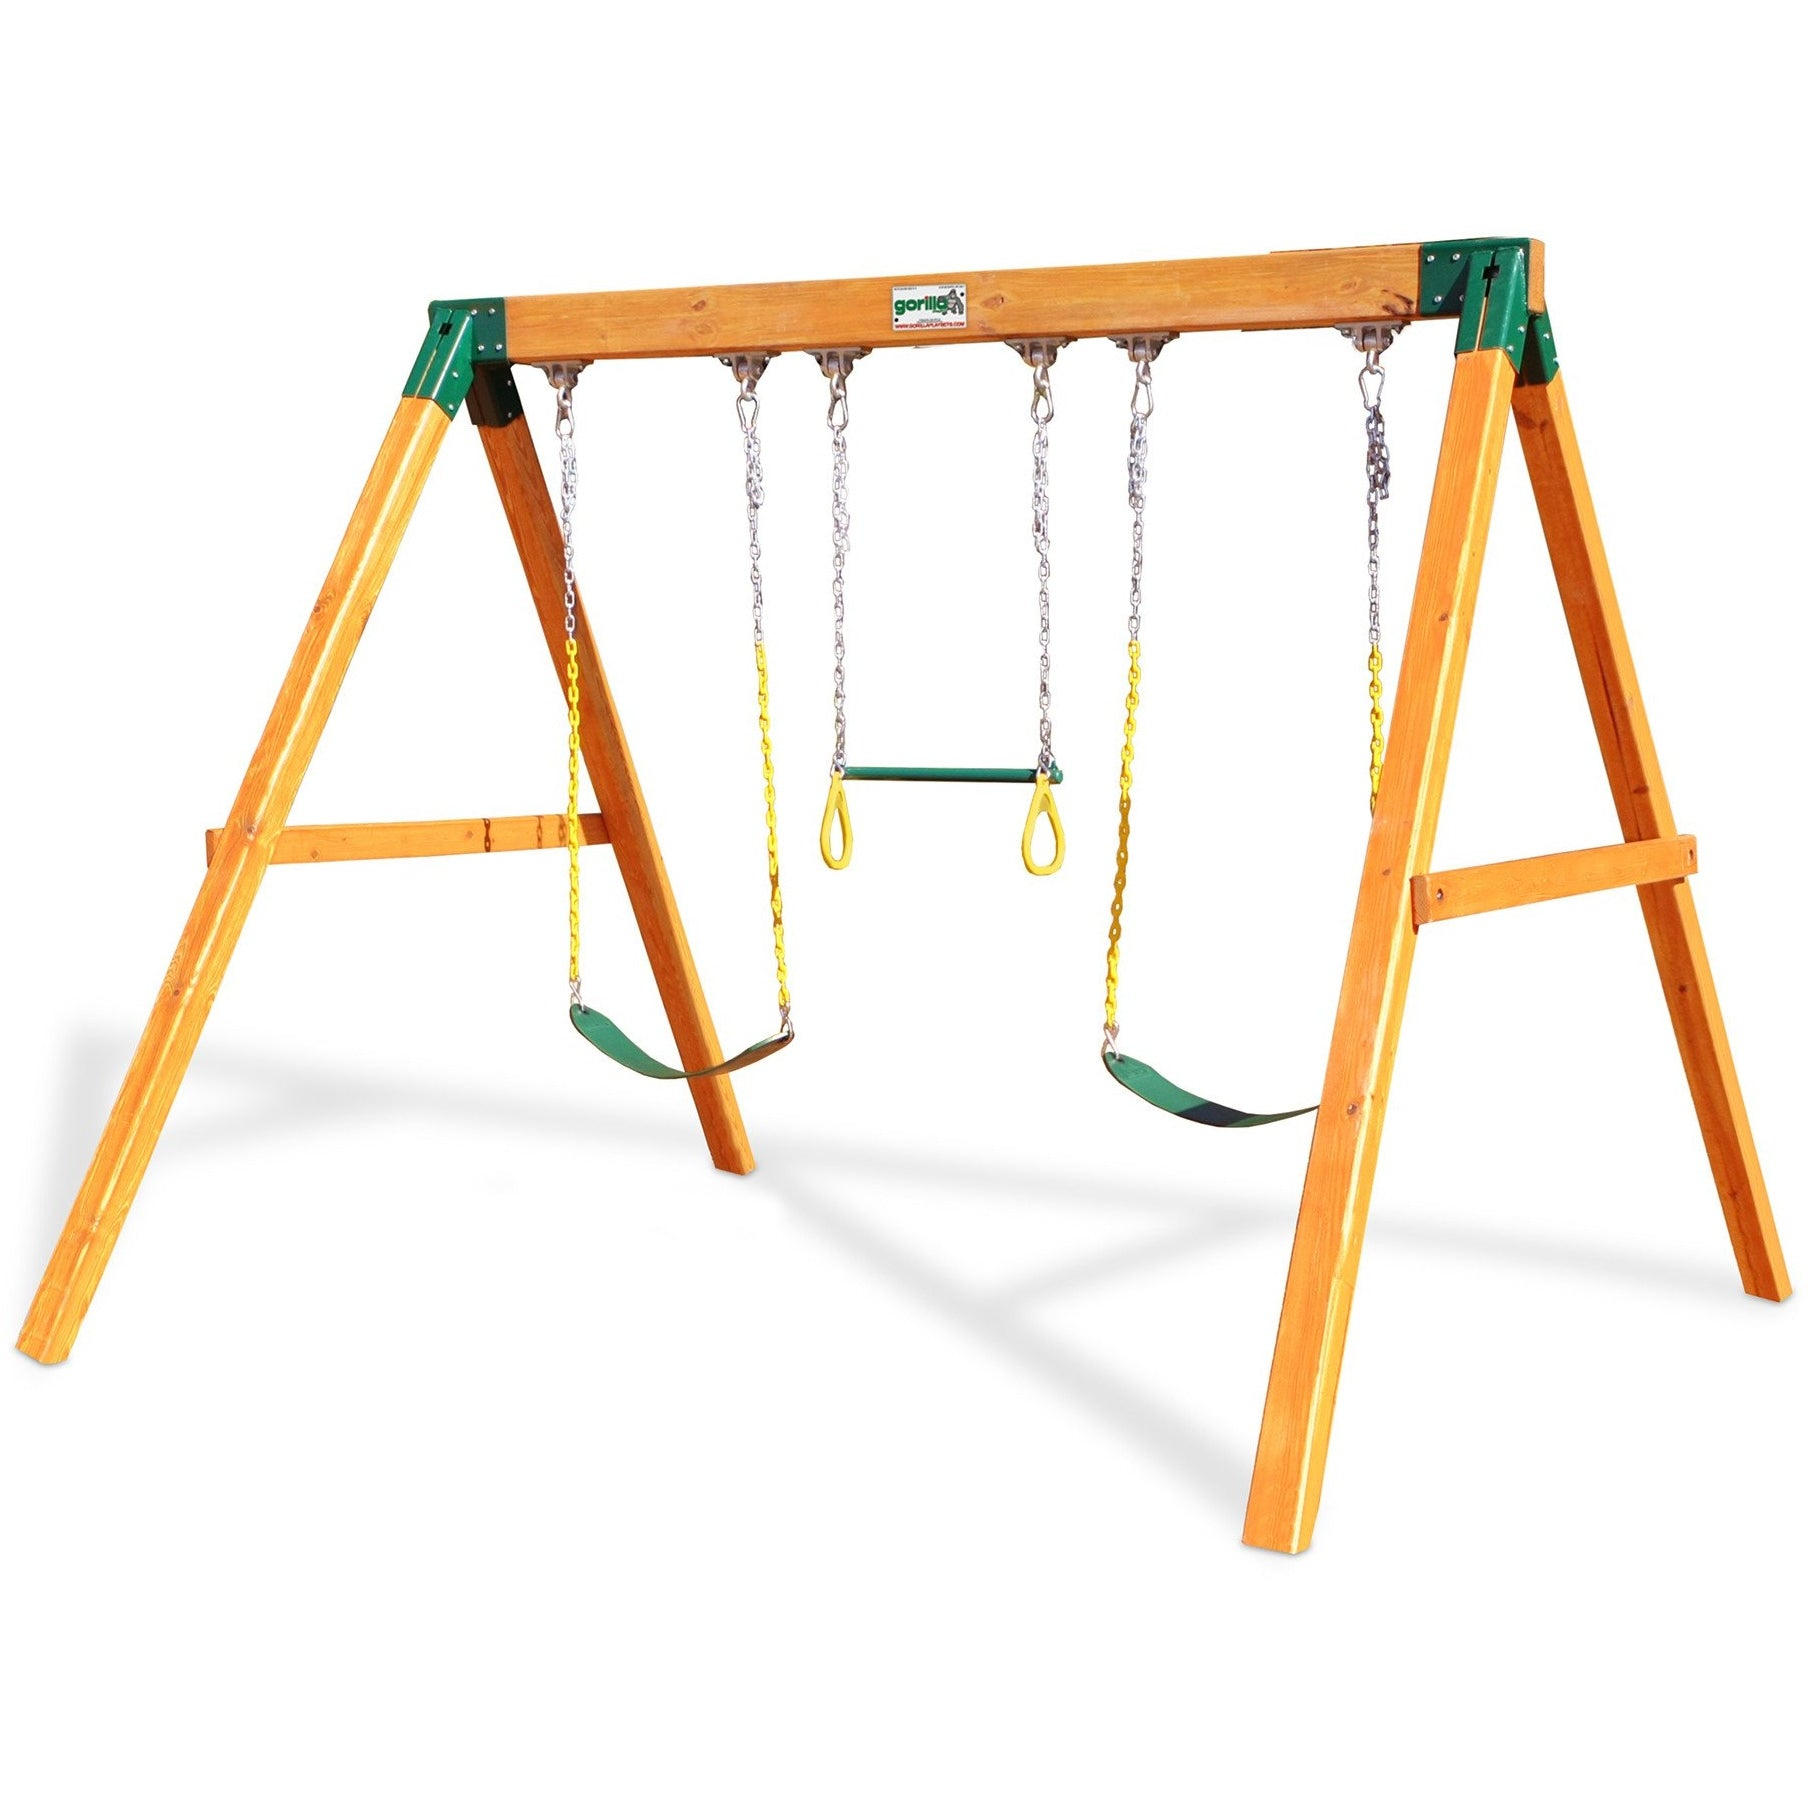 Gorilla Playsets 3 Position Swing Station - Amber Stained Cedar - Swings and More